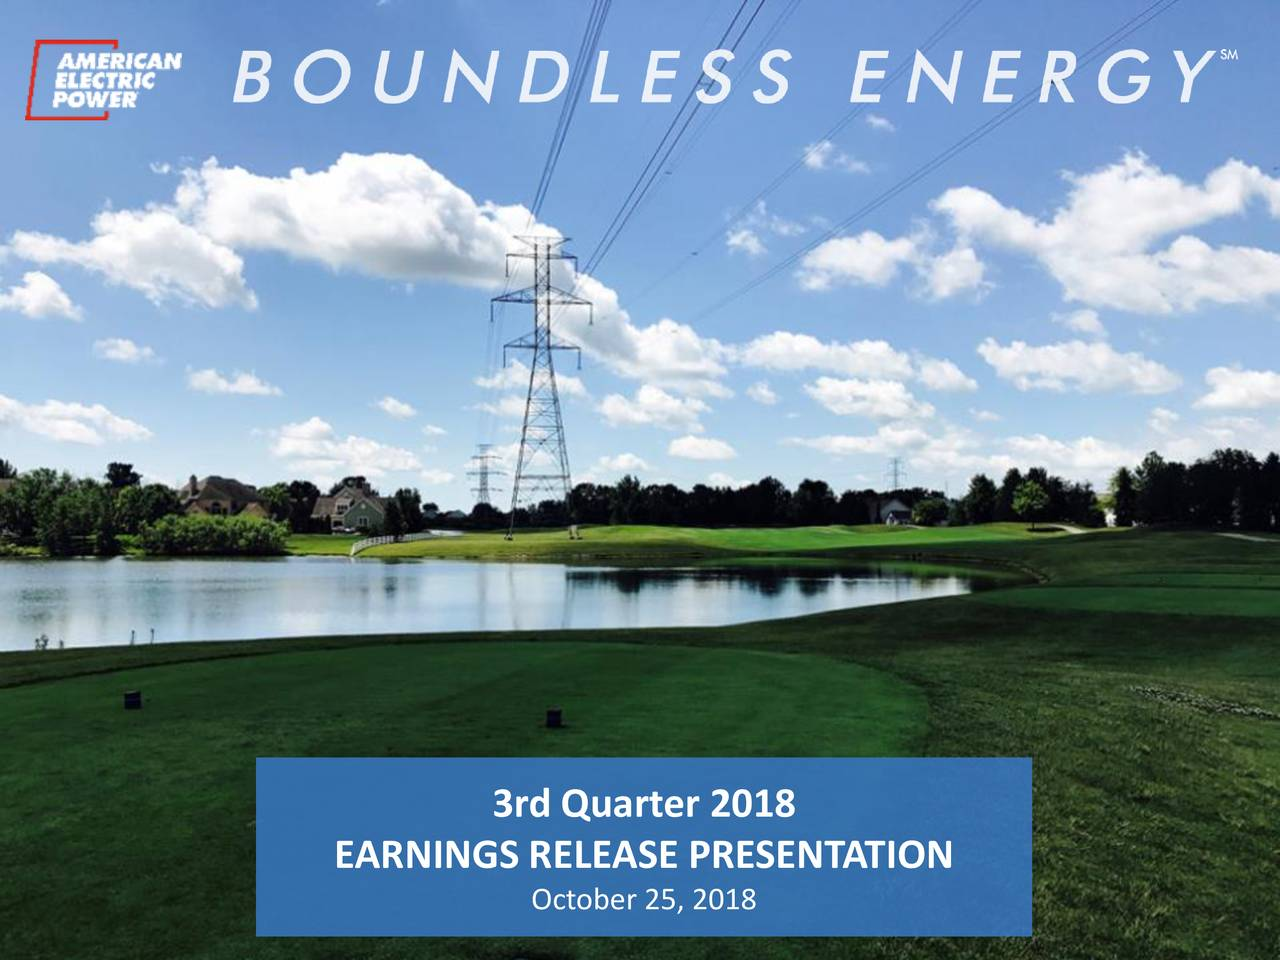 EARNINGS RELEASE PRESENTATION October 25, 2018 September Investor Meetings | aep.com 1